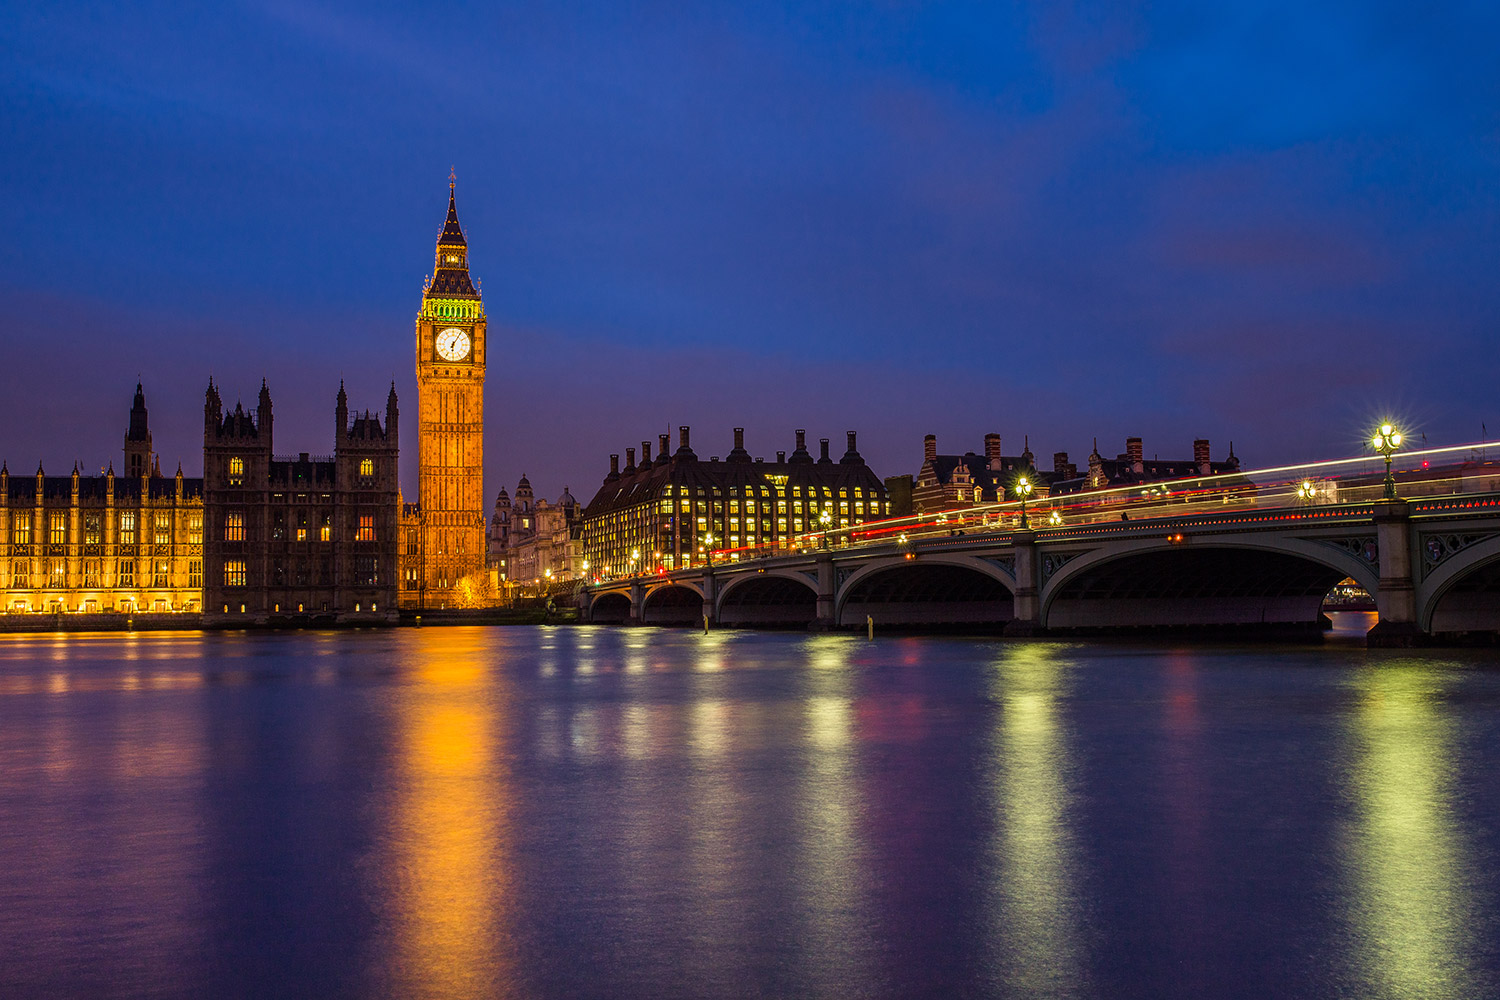 View of the Houses of Parliament, London